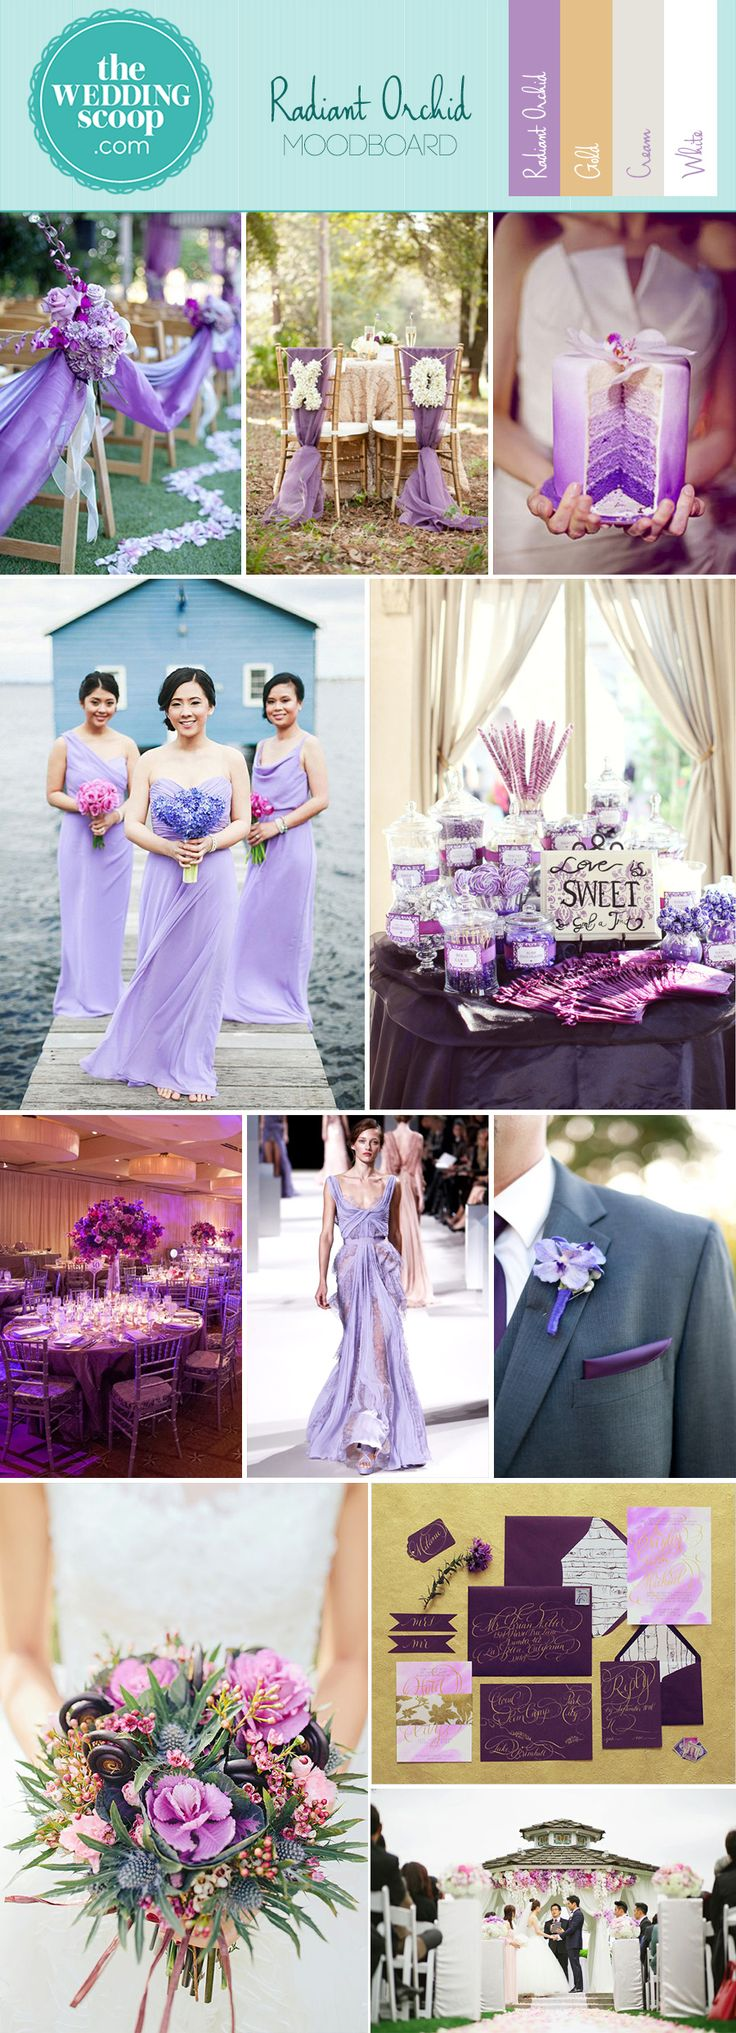 Radiant Orchid Inspiration Board | We've become absolutely smitten with the Pantone color of the year here at The Wedding Scoop. In today's featured inspiration board, we take a look at the naturally decadent Radiant Orchid at its best - paired with neutral hues and generous helpings of gold for the most opulent of weddings. #radiantorchid #purple #wedding